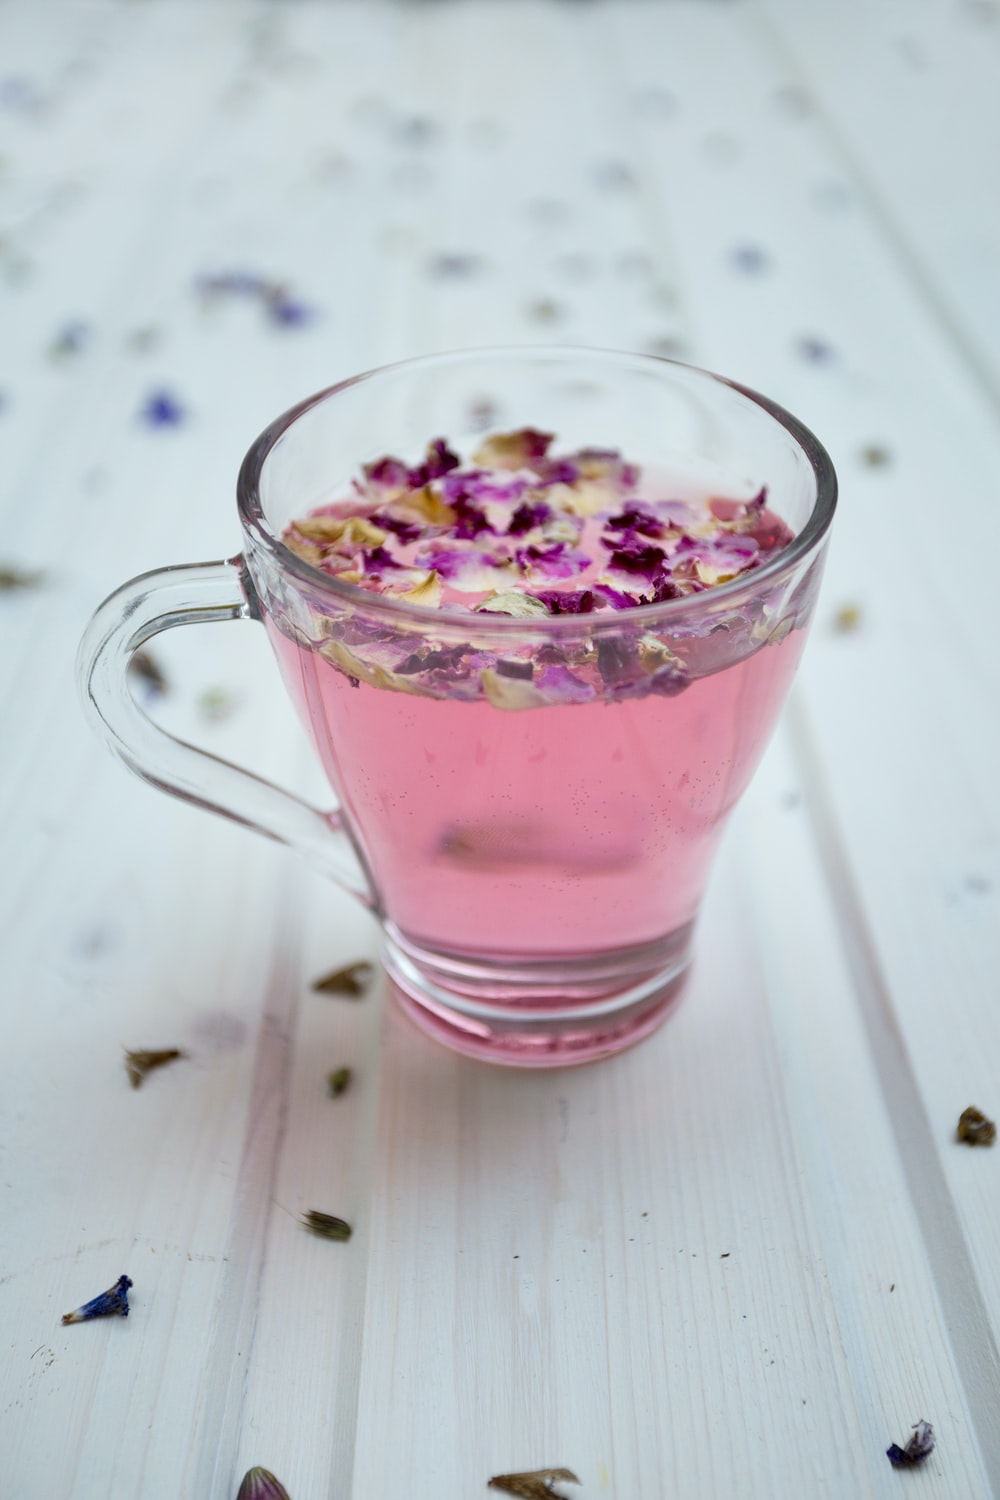 clear glass cup surrounded by petals